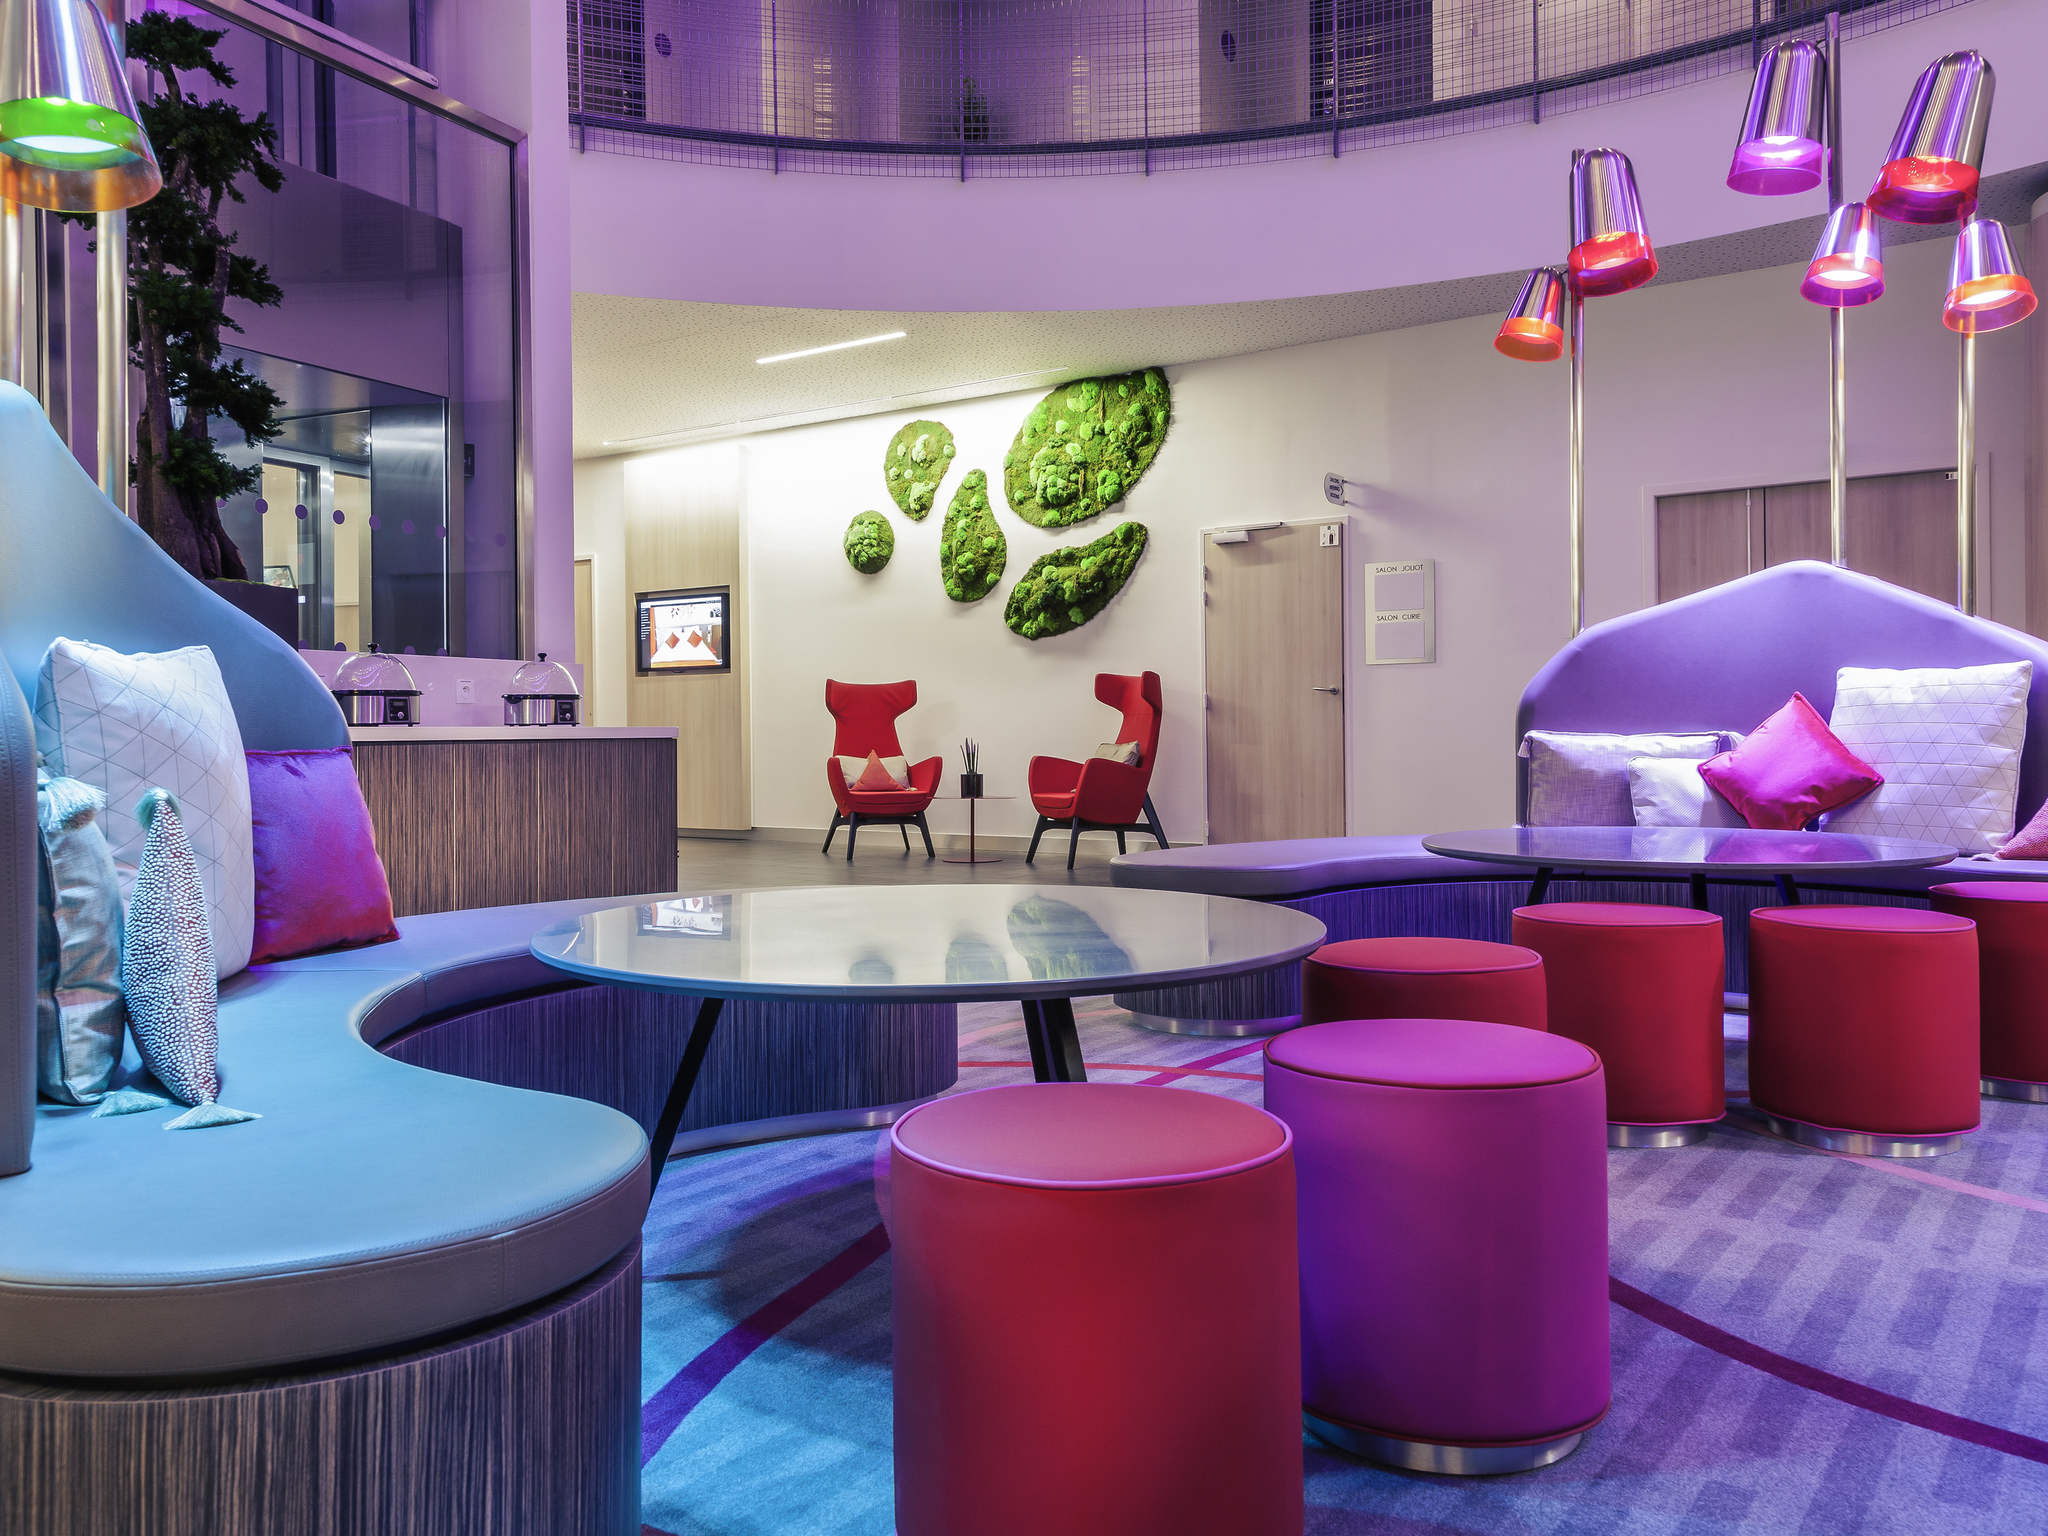 Hotel – Hotel Mercure Toulouse Sud